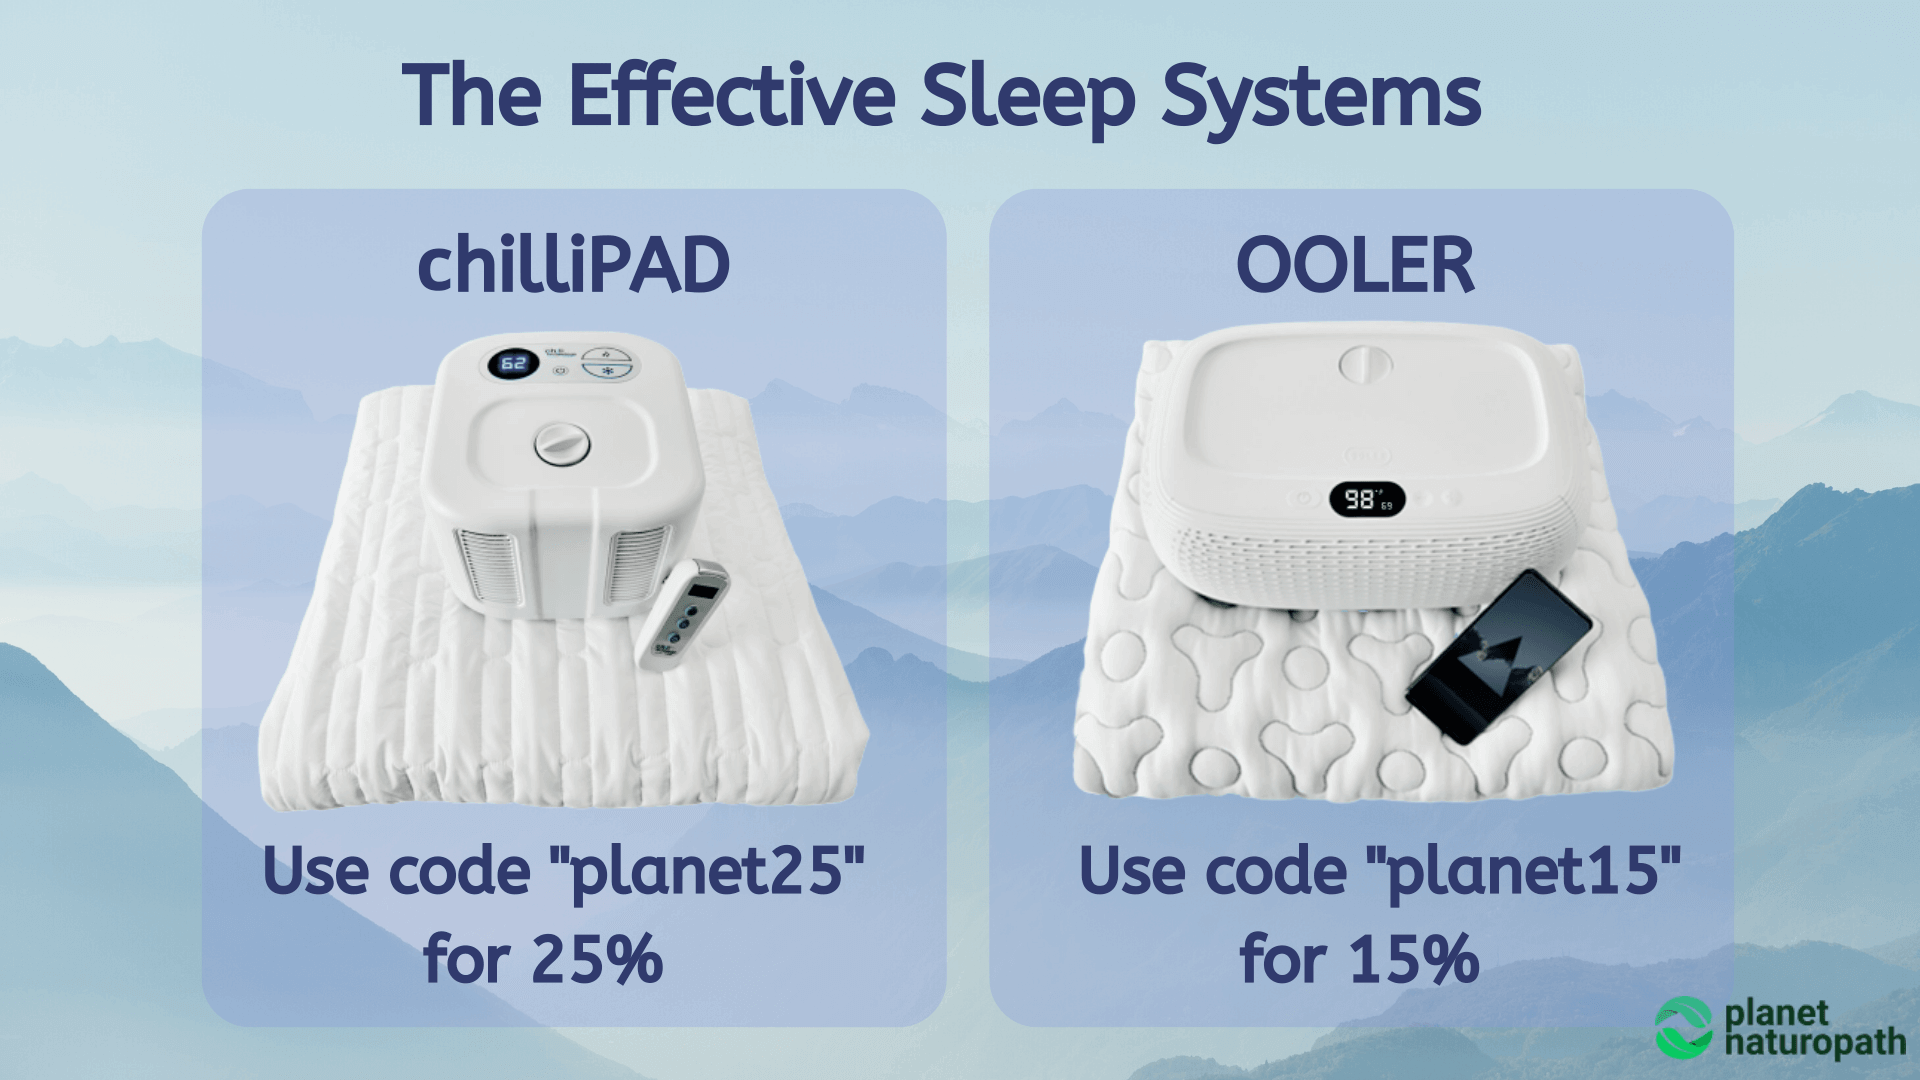 The effective sleep systems to reduce hot flashes